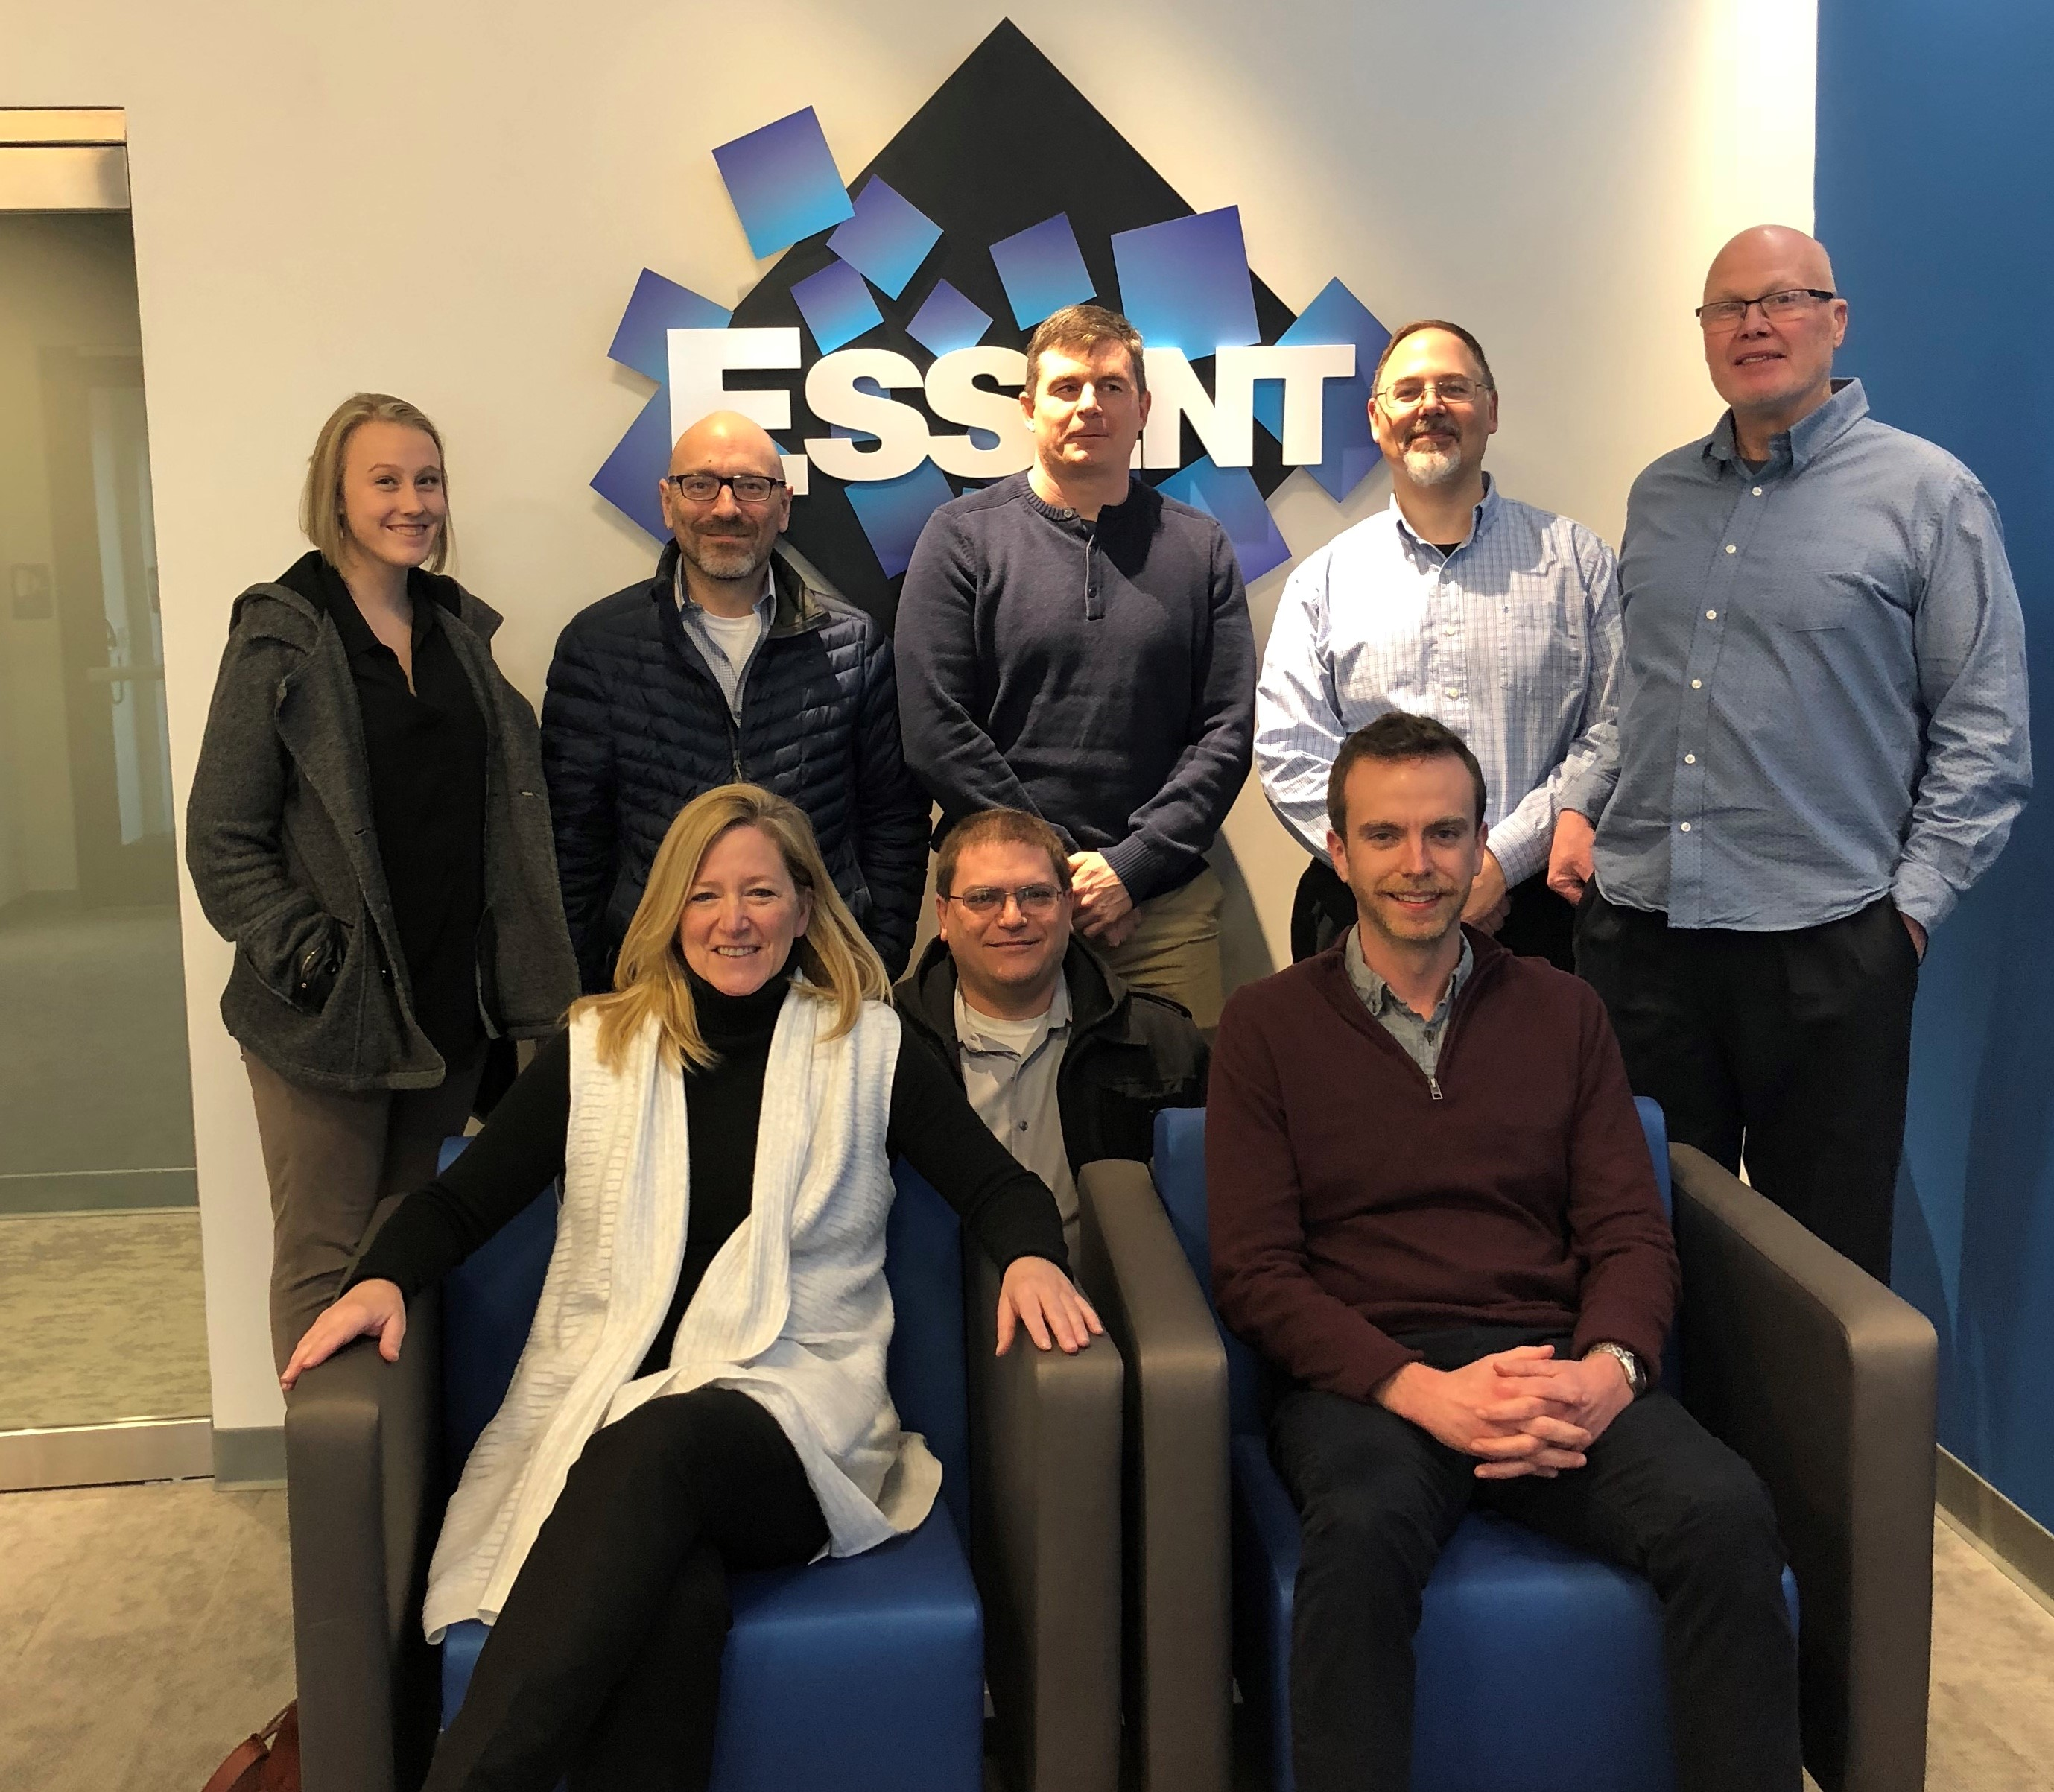 Artcraft Visits Essent Place